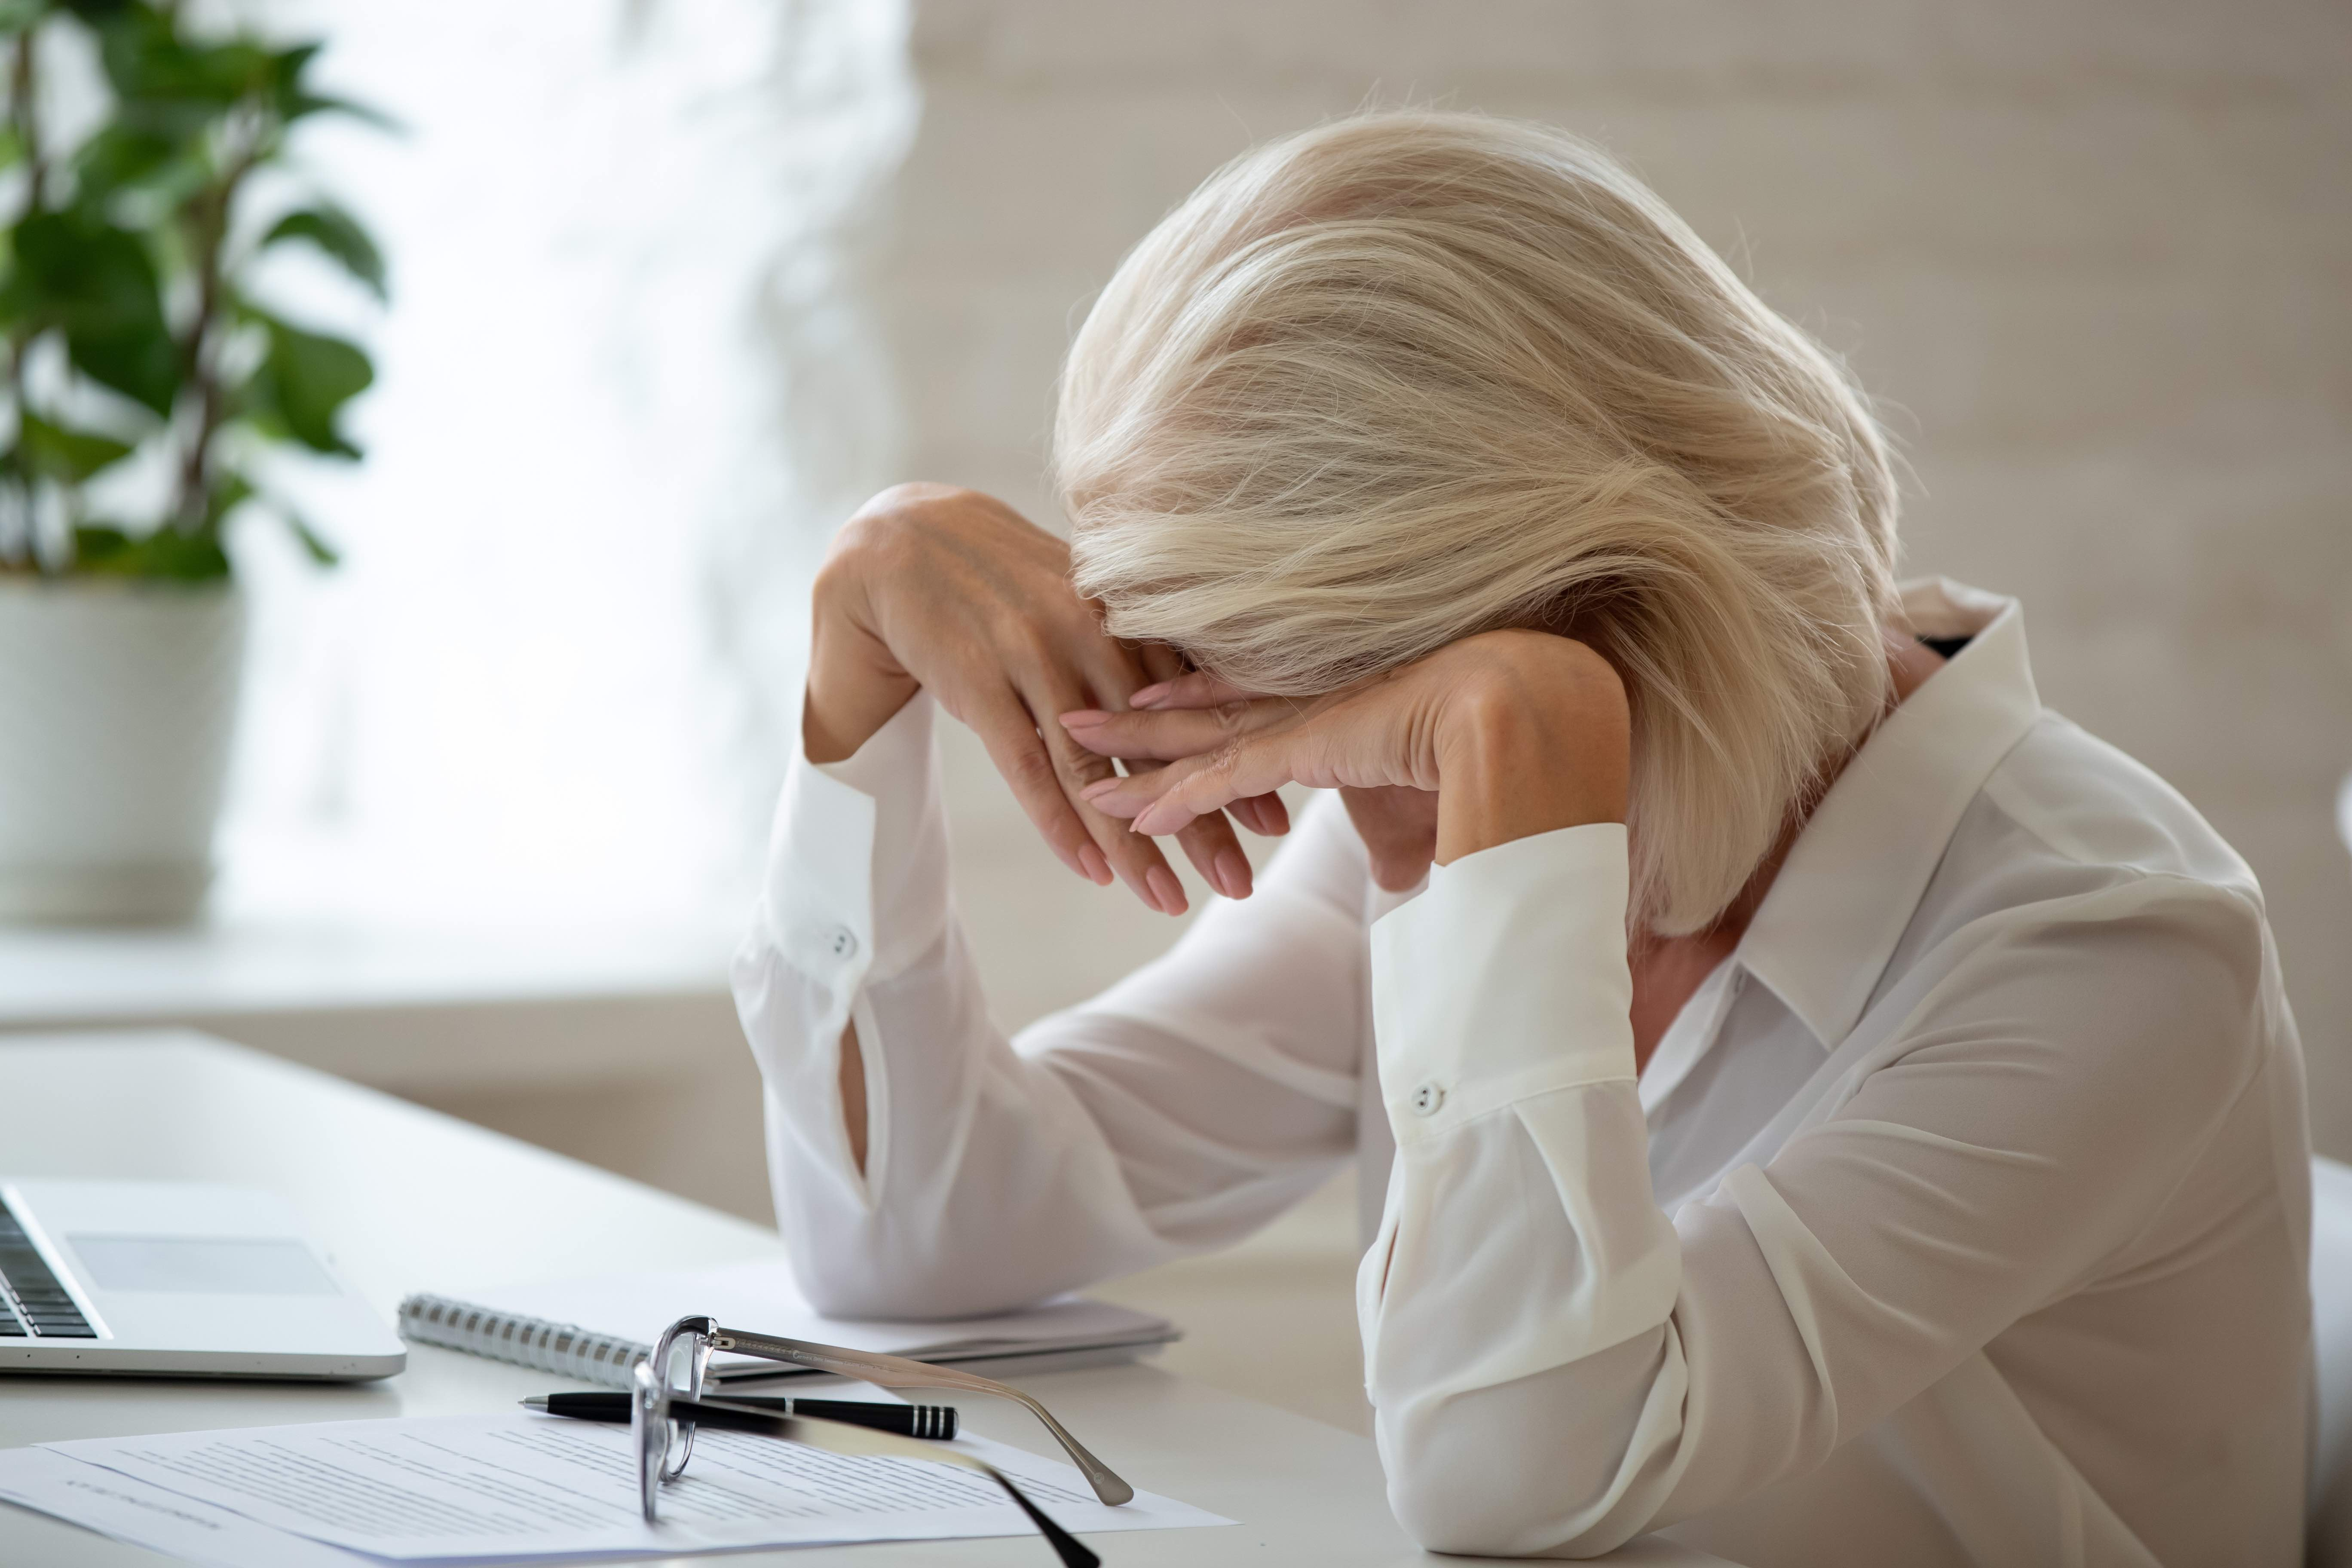 Many people suffer fatigue and other symptoms long after a viral infection like COVID-19 has passed. (fizkes/Shutterstock)